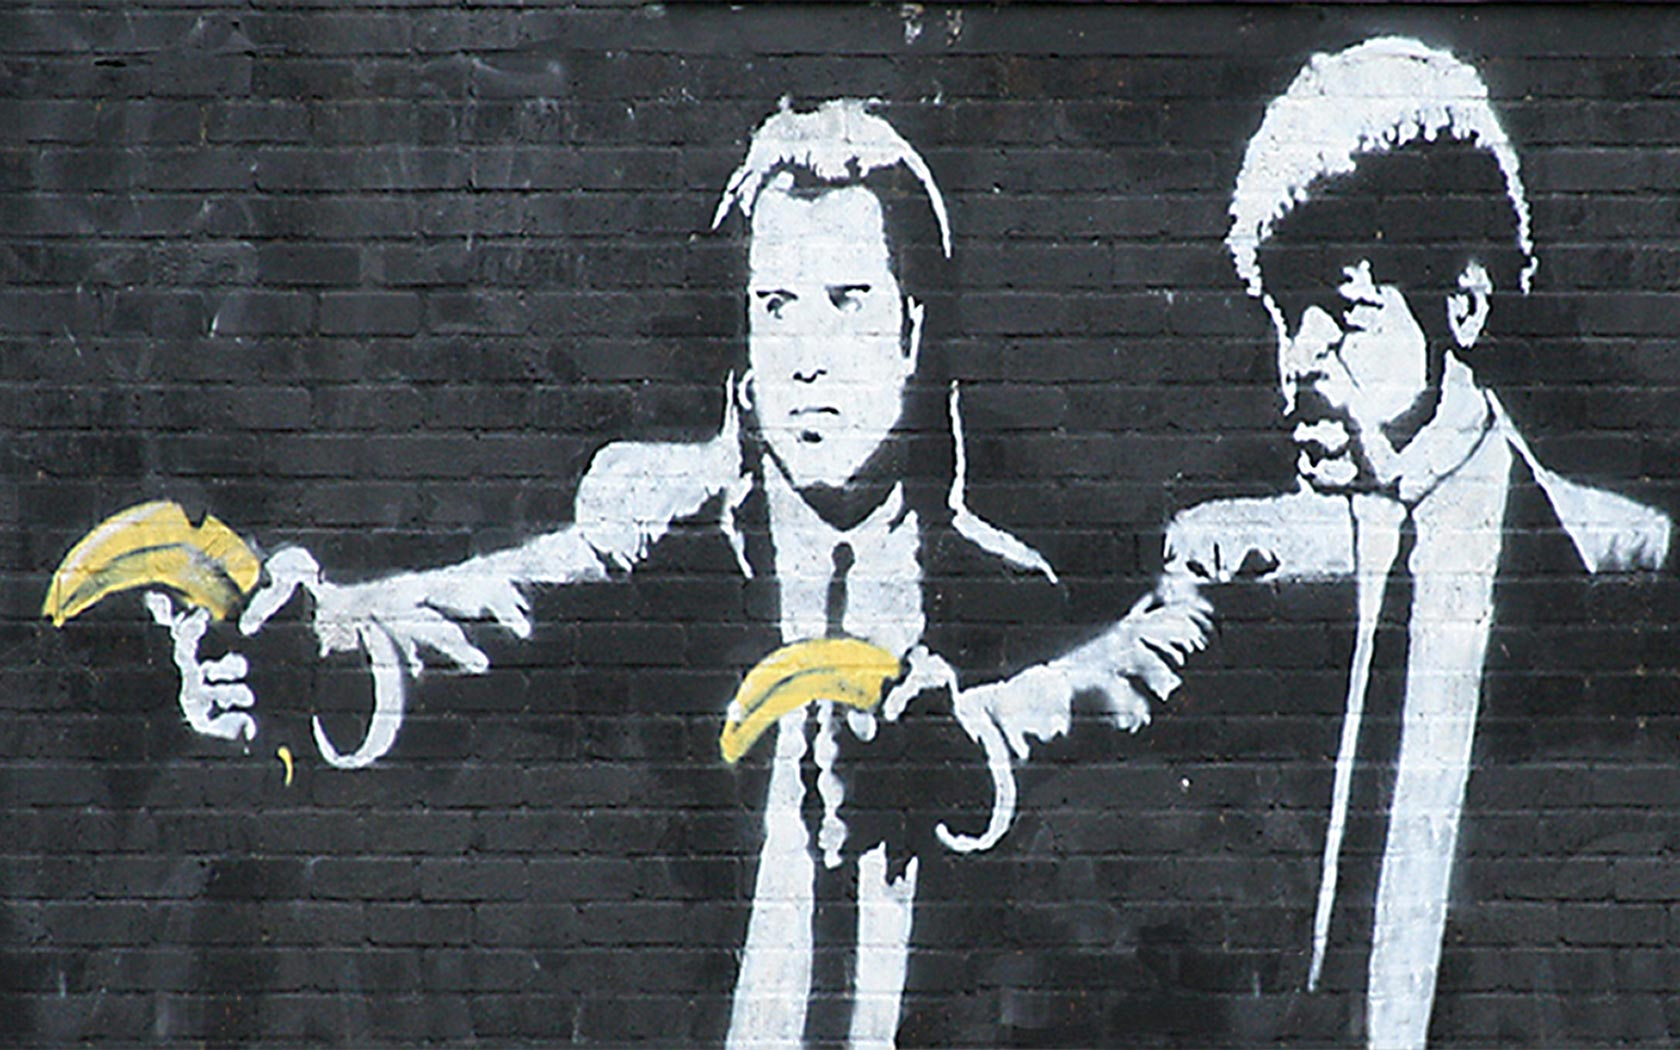 Banksy Arrested In London, Identity Revealed, page 1